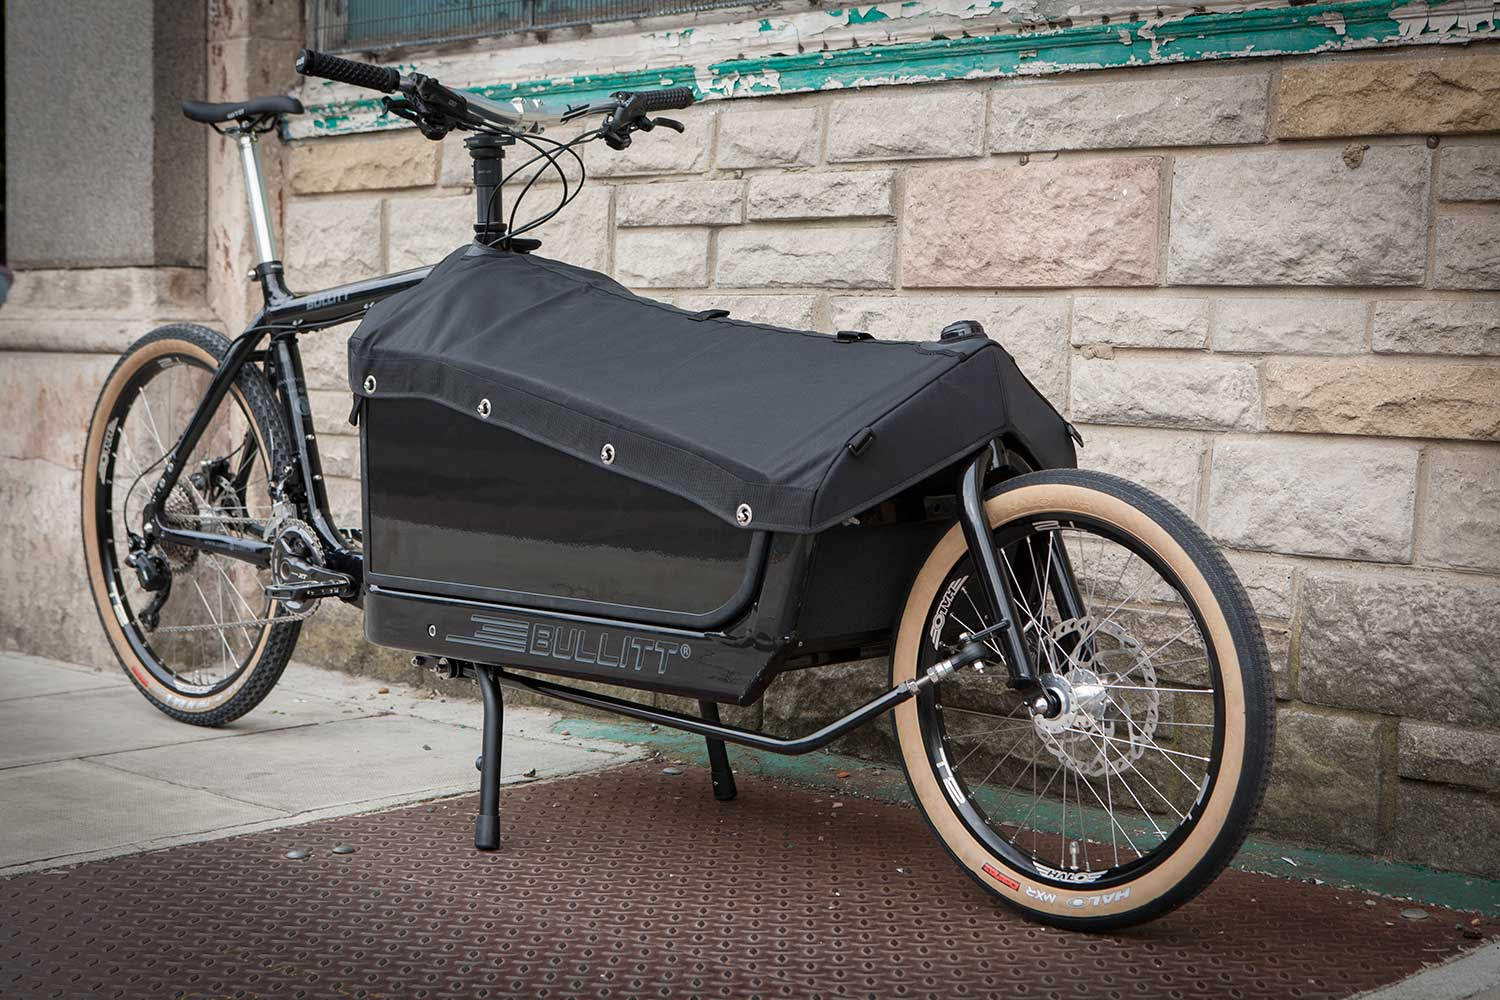 larry vs harry bullitt cargo bike